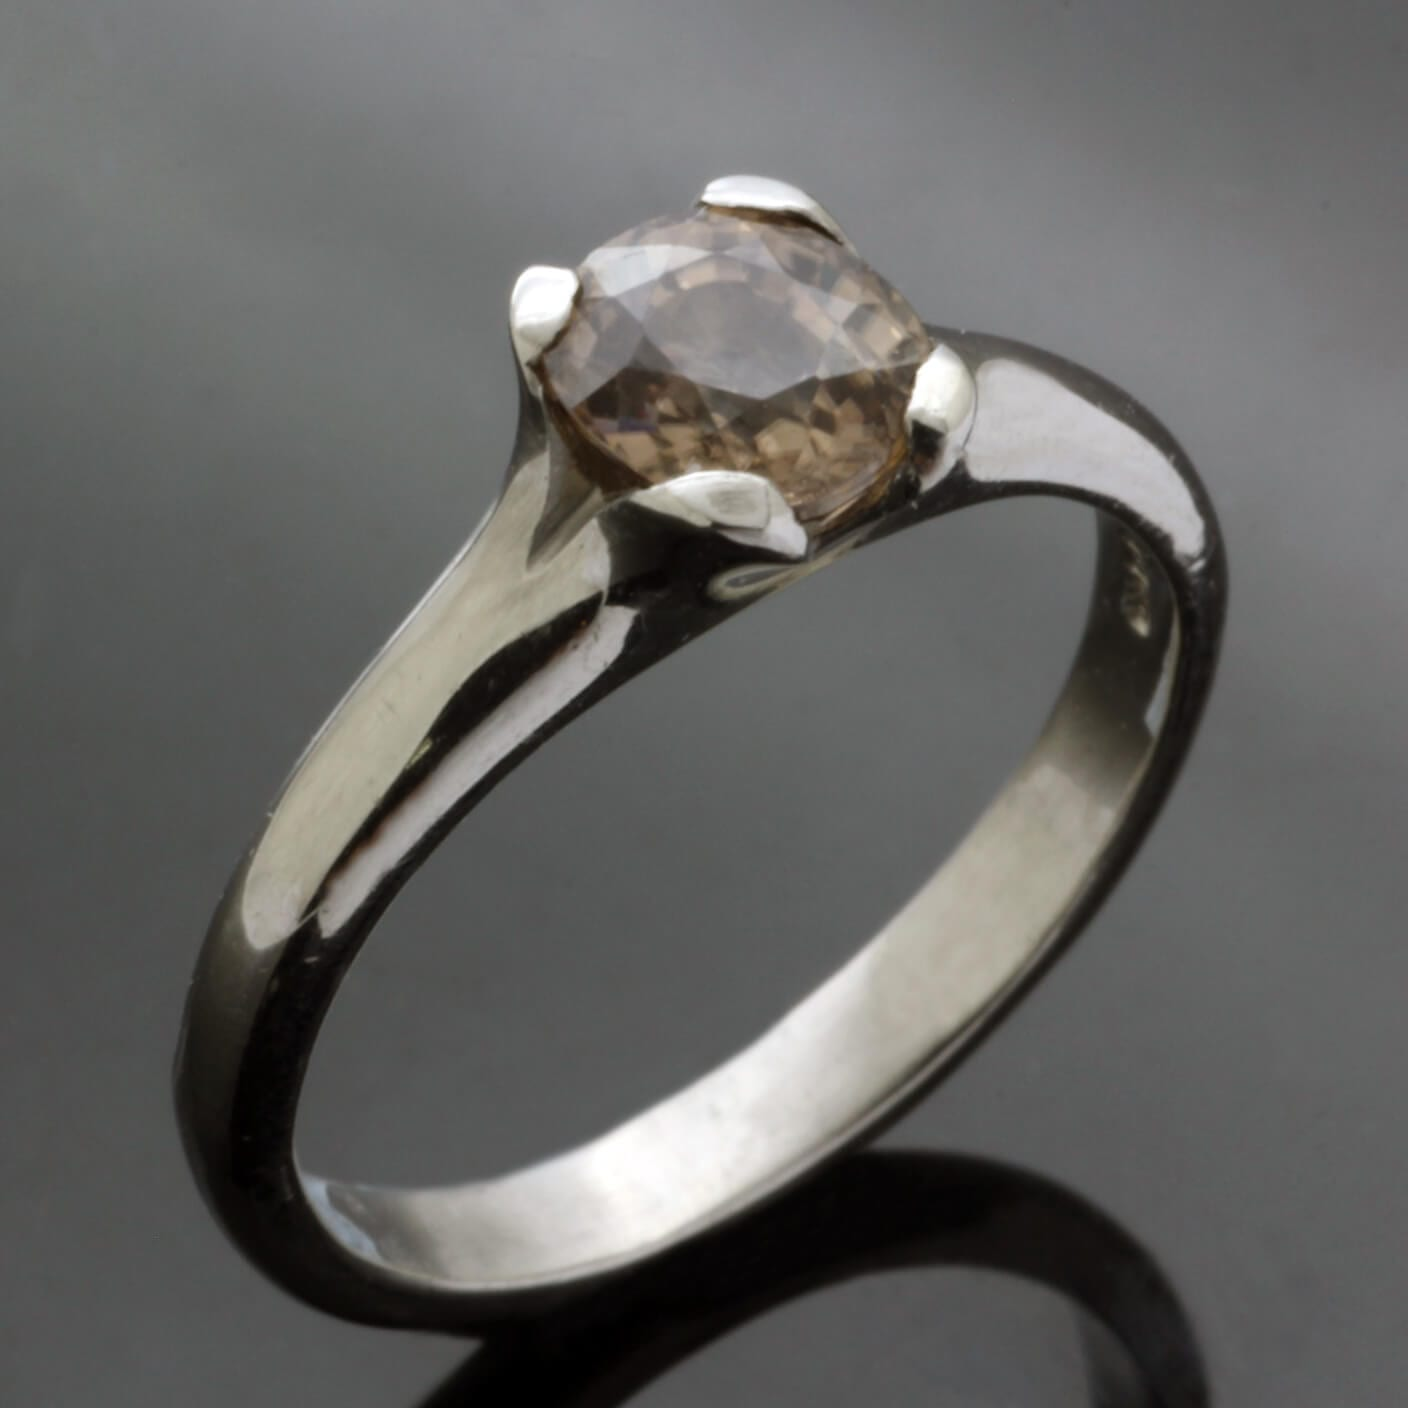 Unconventional engagement ring with natural Zircon gemstone by Julian Stephens